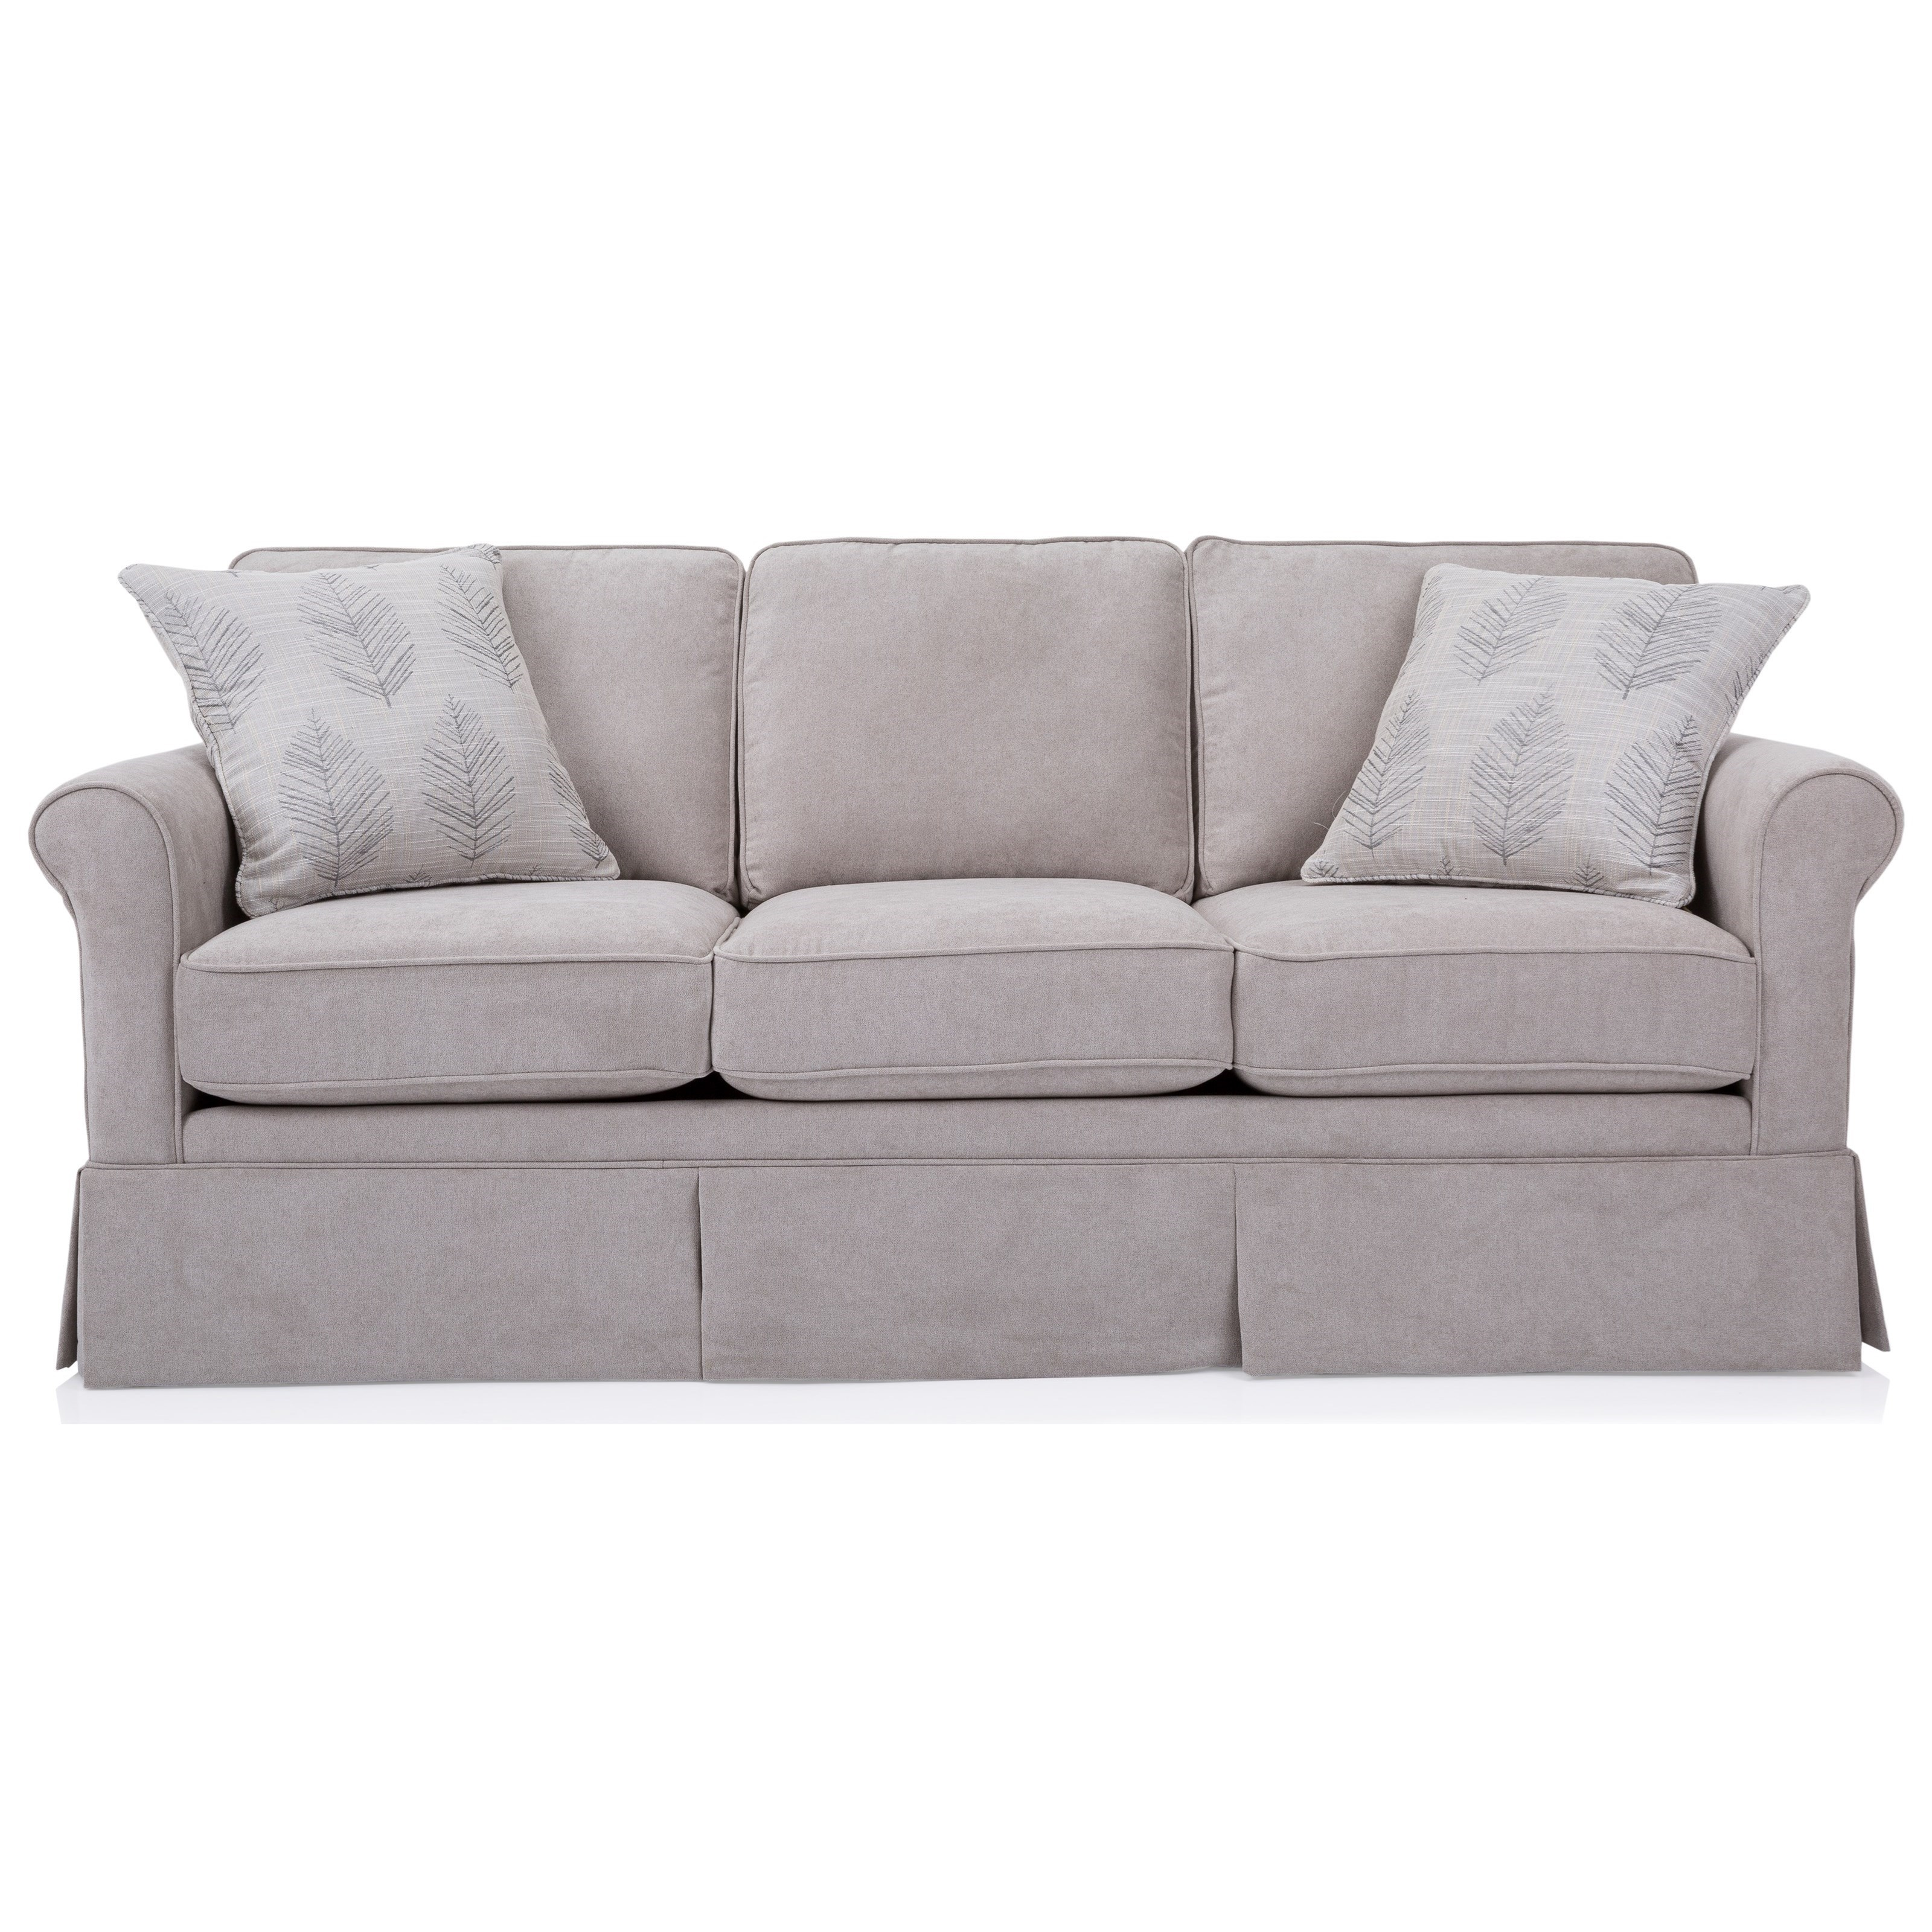 2462 Sofa by Decor-Rest at Stoney Creek Furniture